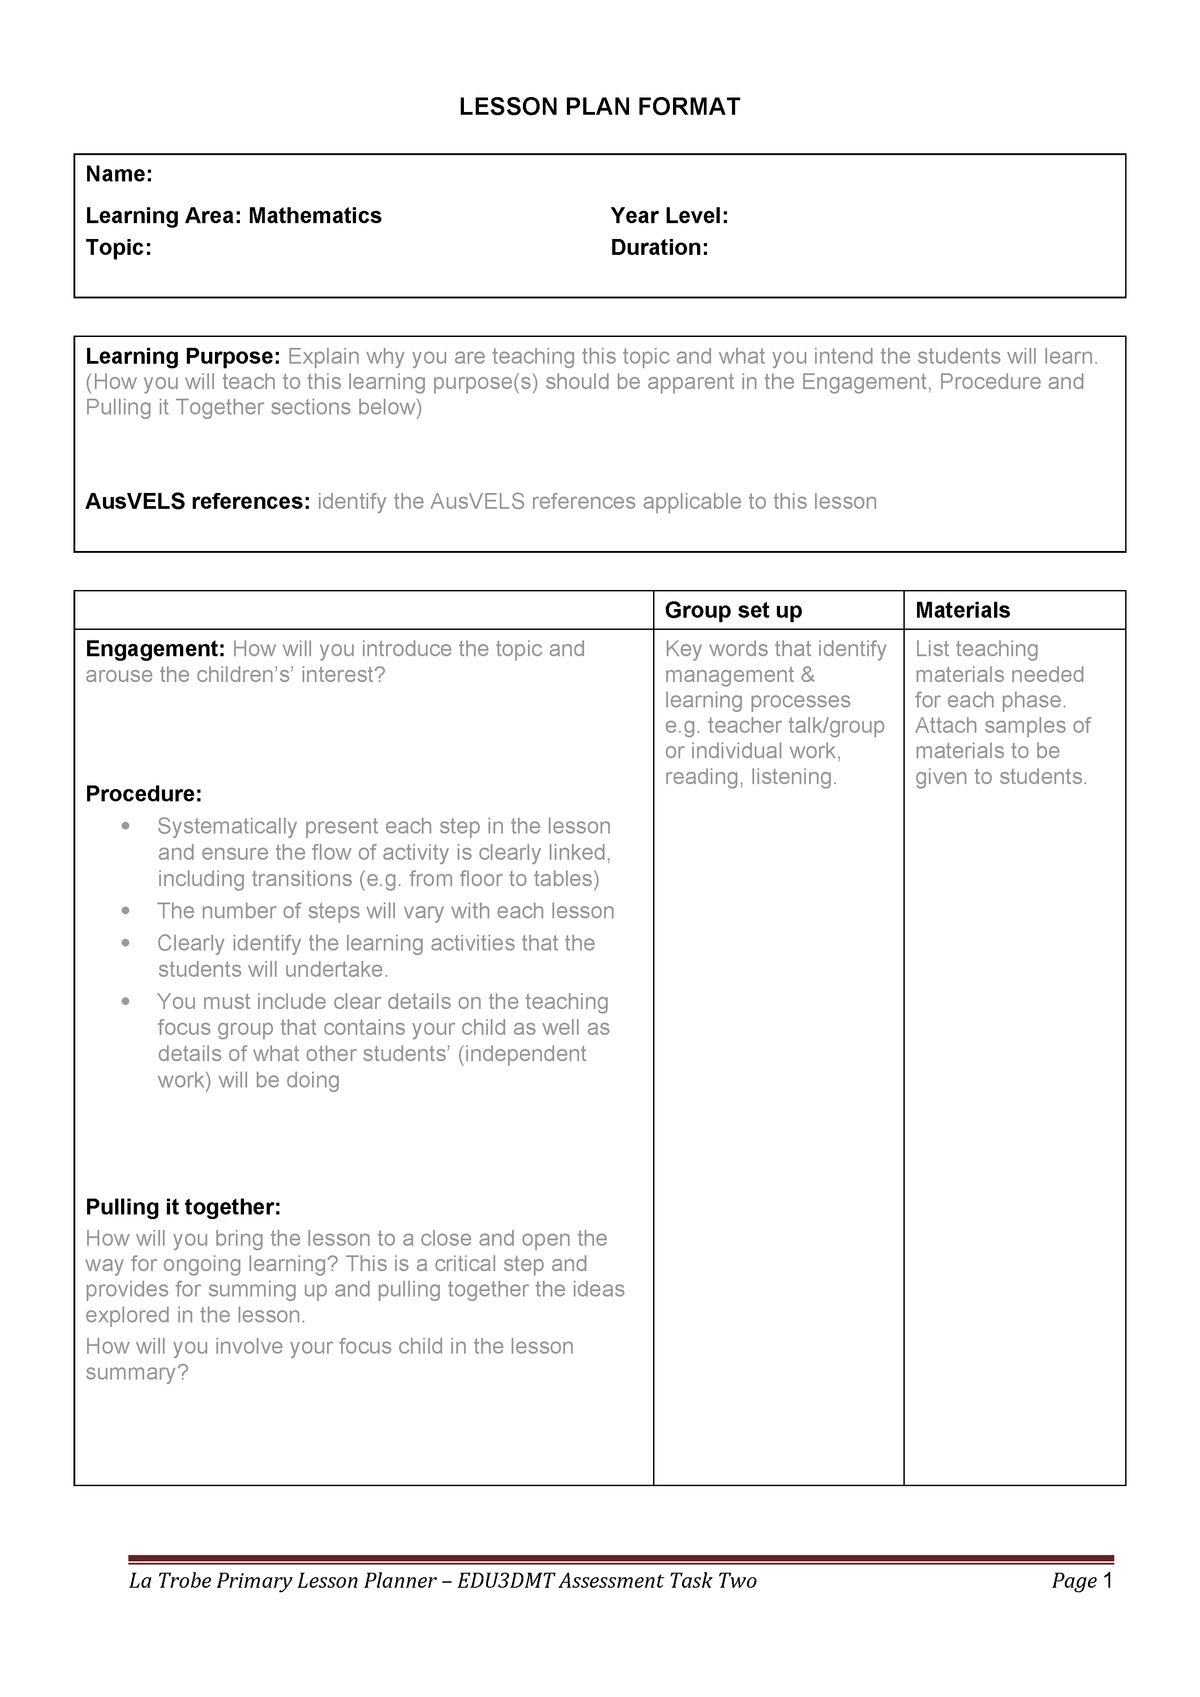 Primary Lesson planner Template - EDU3DMT: Developing Mathematical